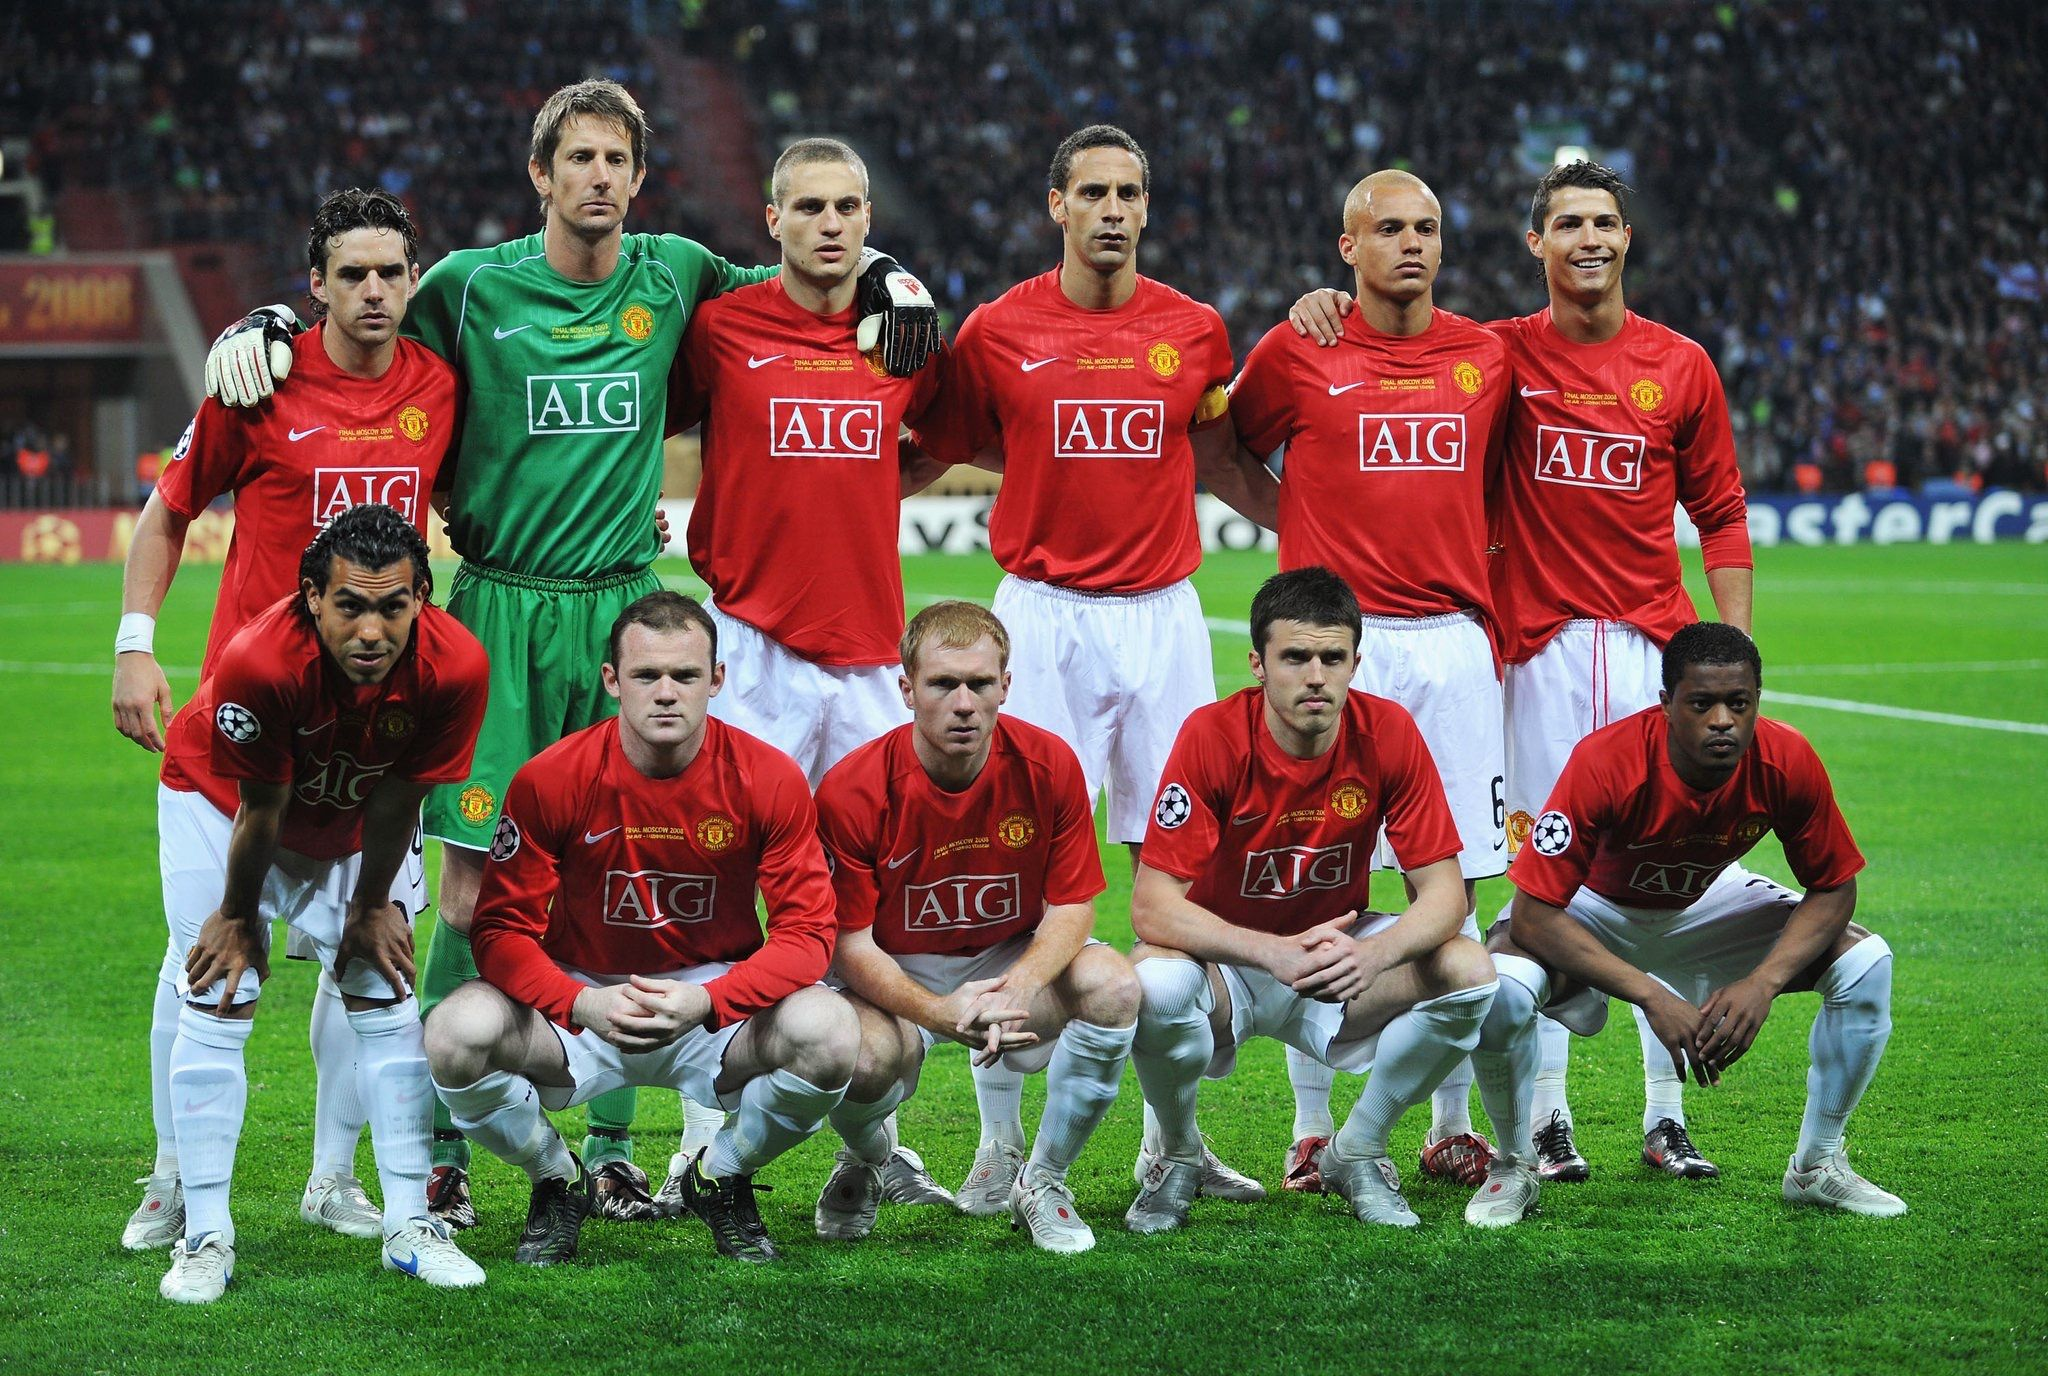 Manchester United Wins Champions League Final The New York Times